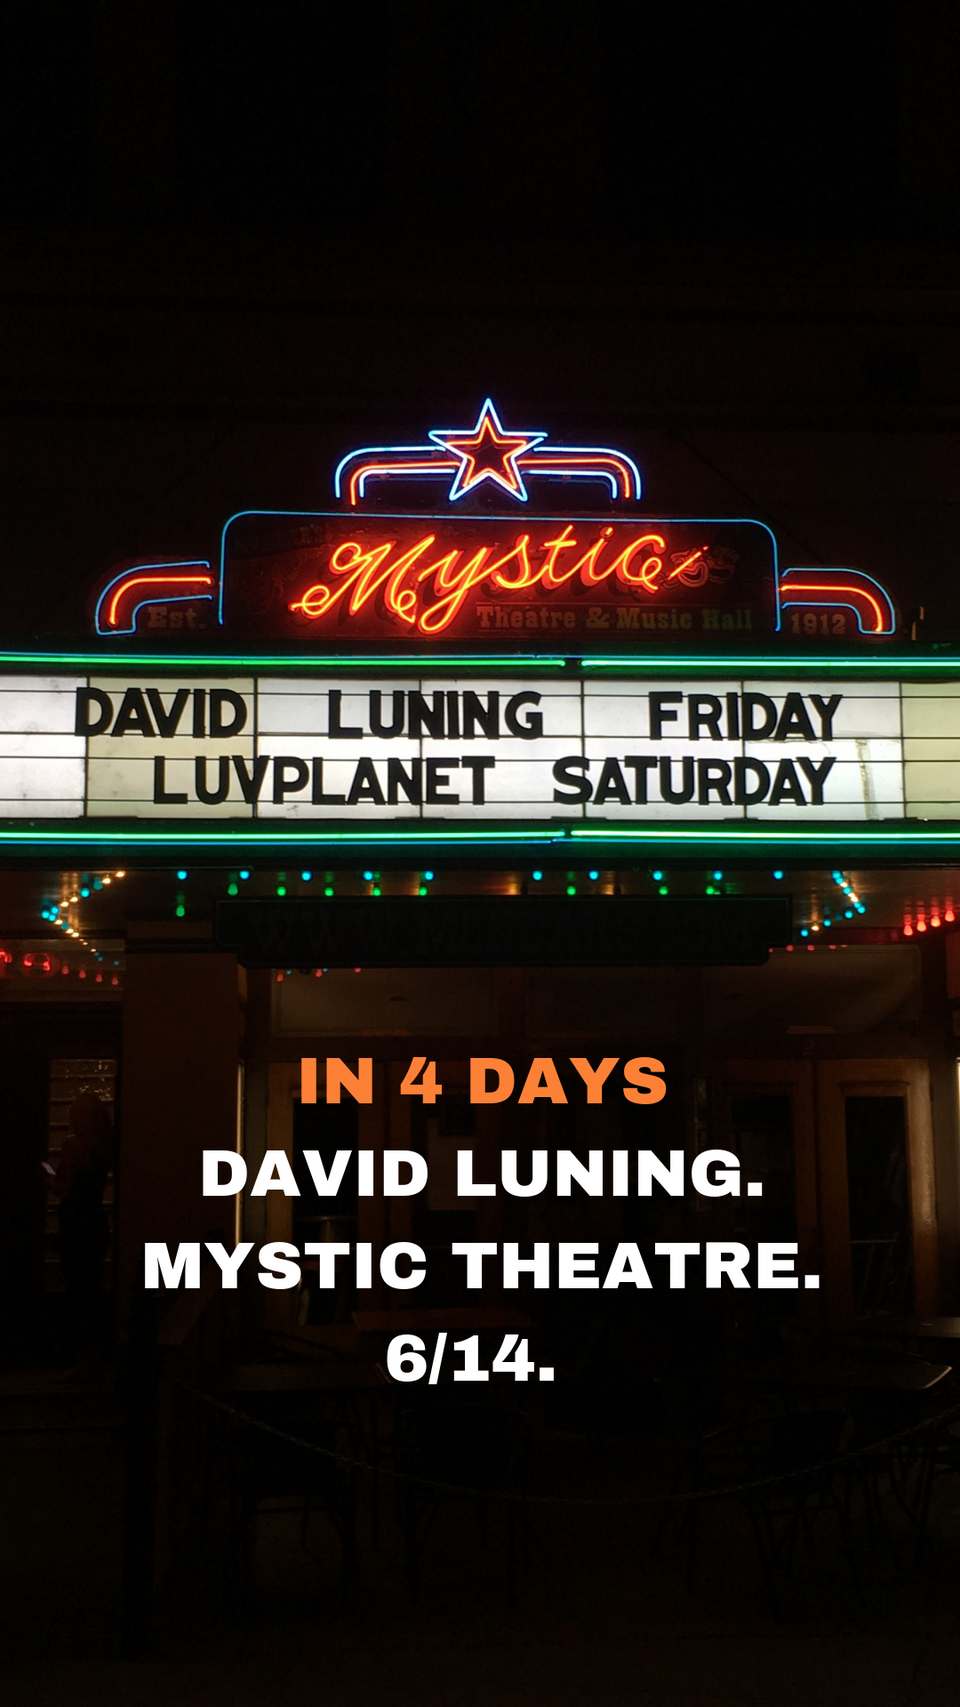 In 4 days! David Luning. Mystic Theatre. 6/14.